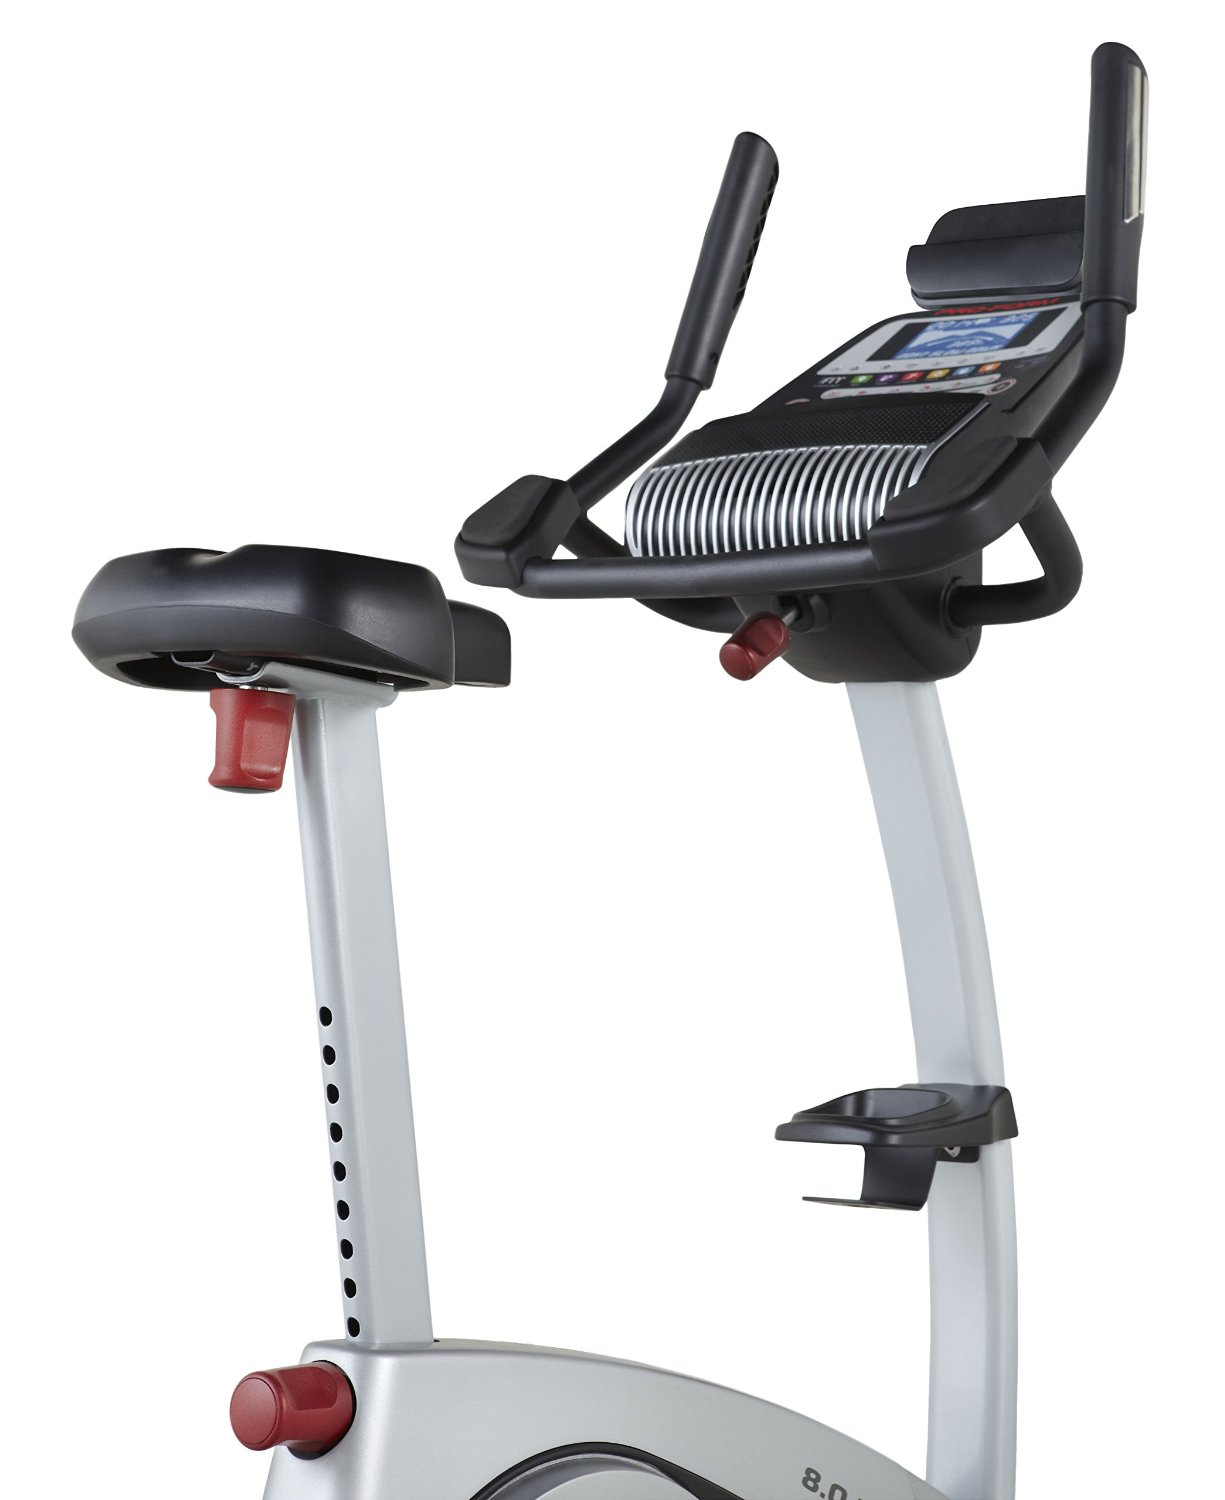 proform 8 0 ex exercise bike review latest fitness reviews fitness machine reviewslatest. Black Bedroom Furniture Sets. Home Design Ideas